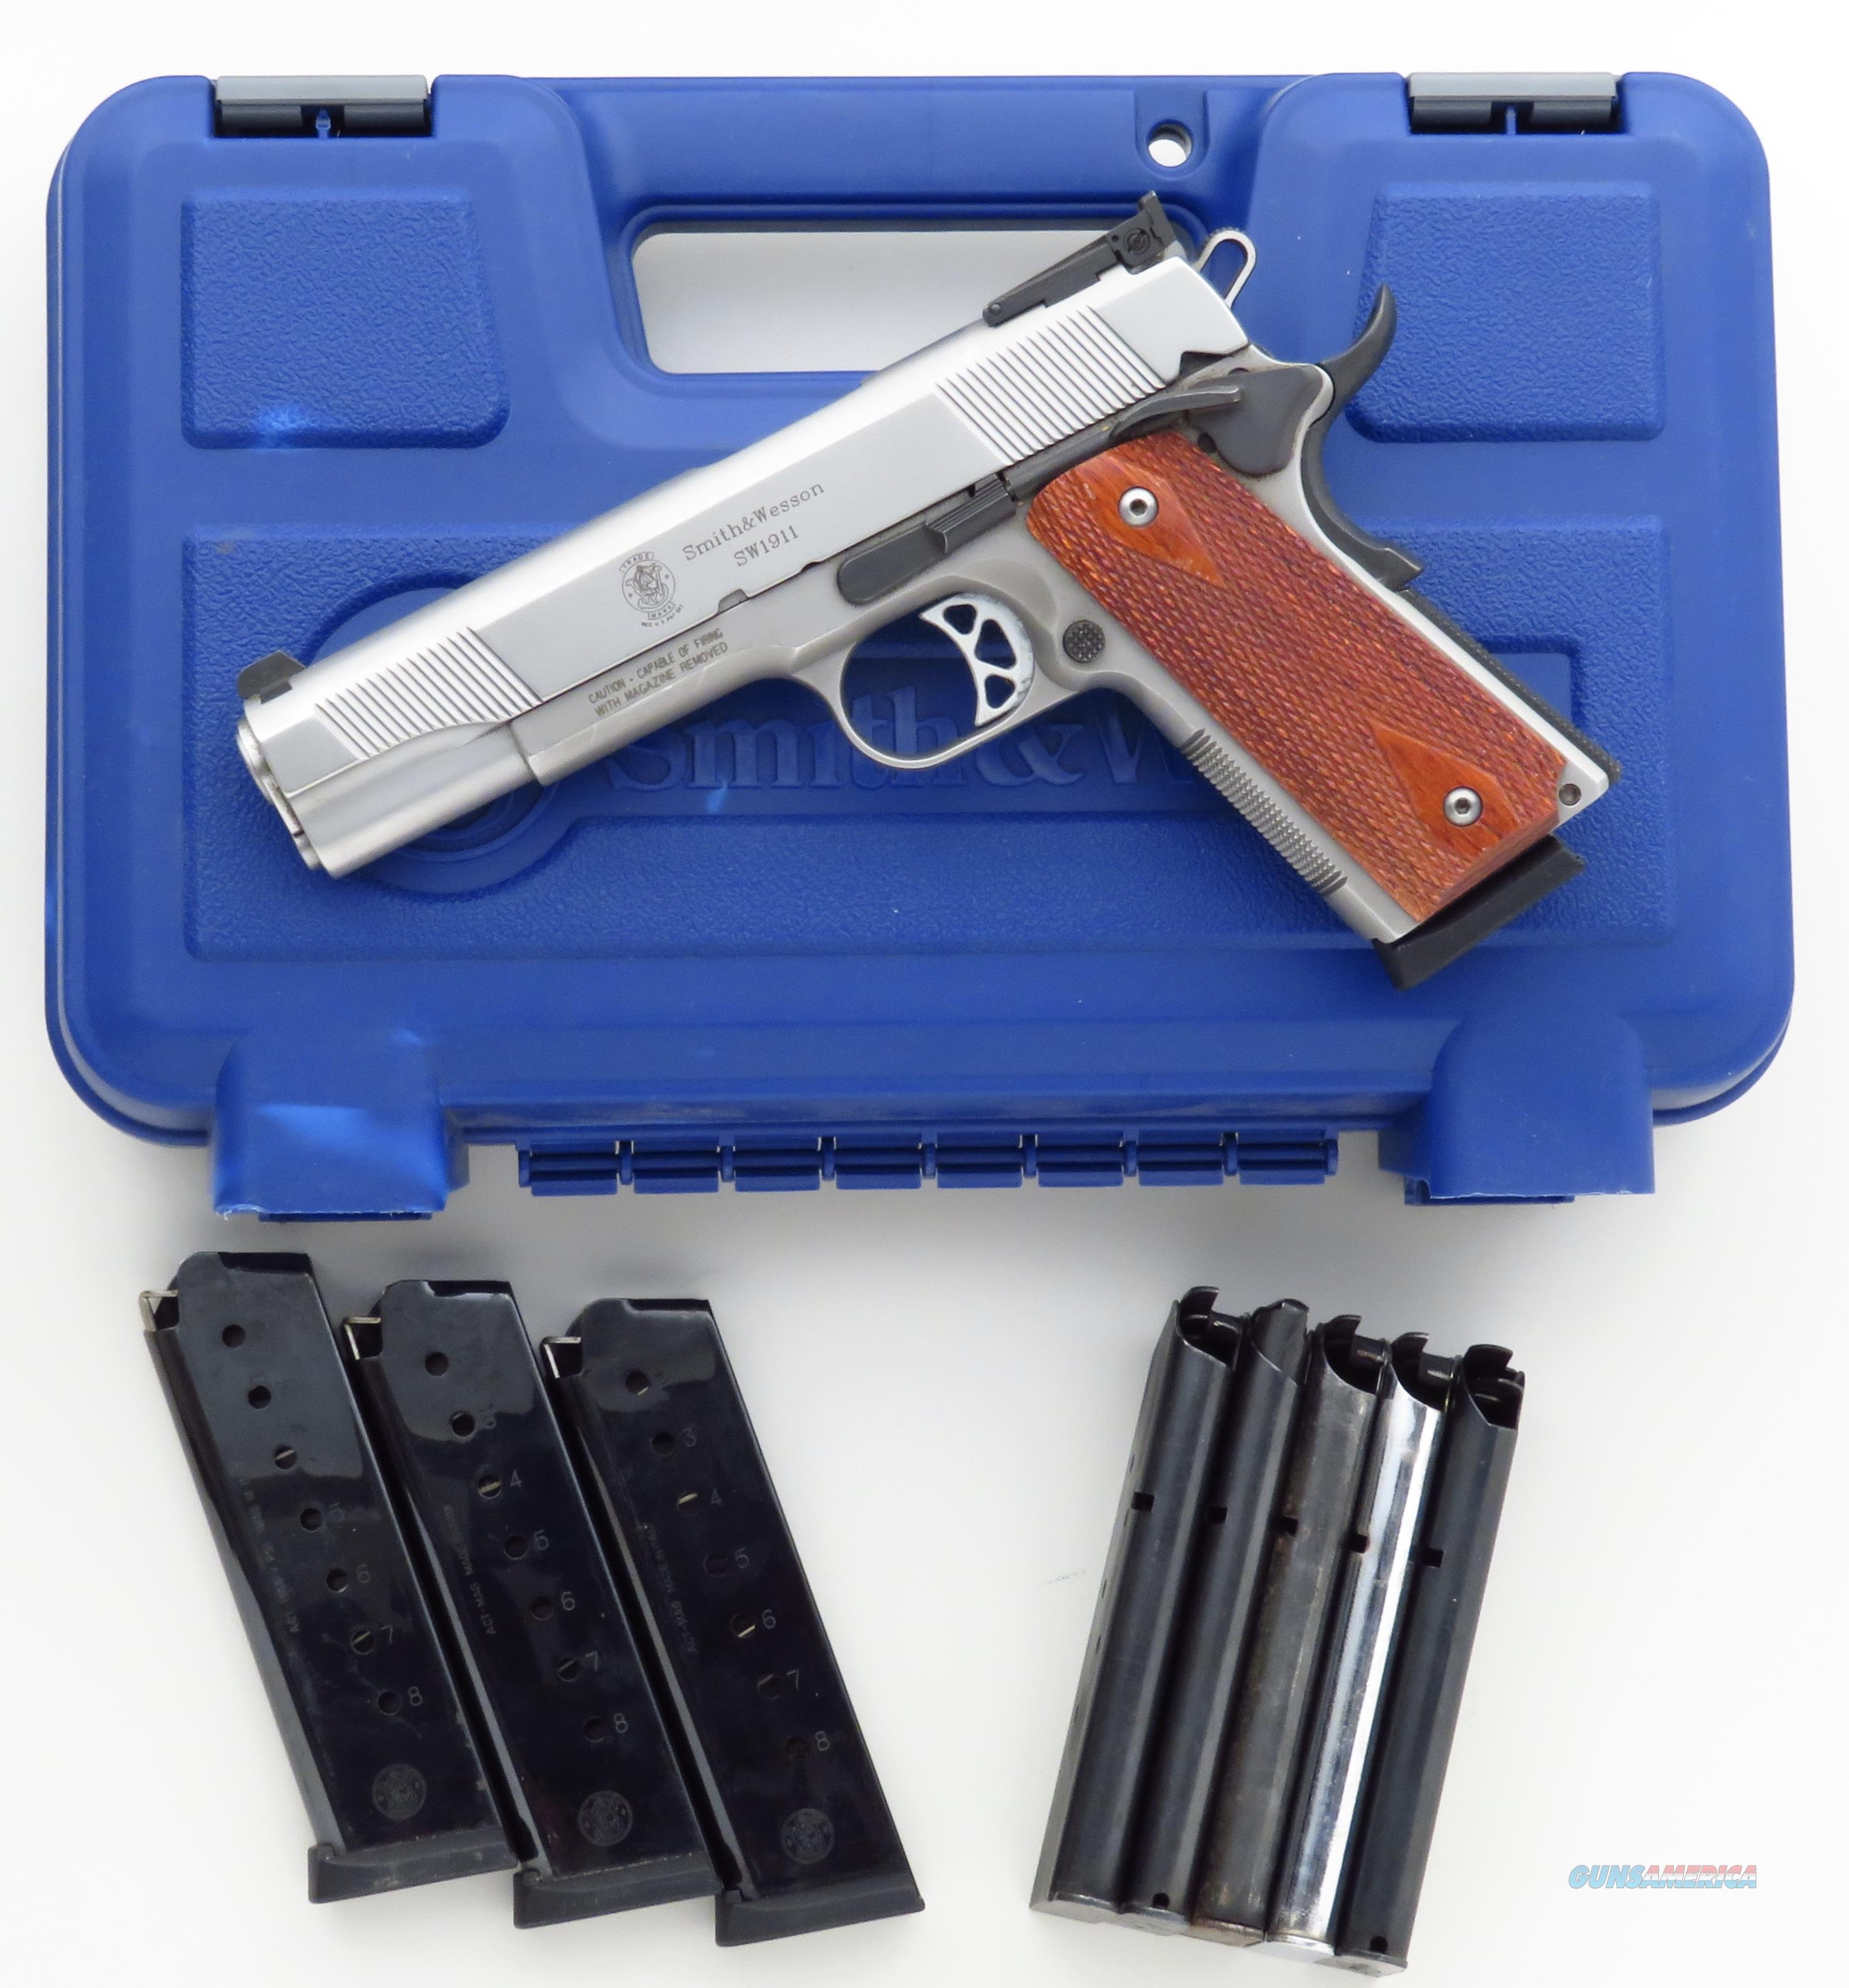 Smith & Wesson SW1911 .45 ACP, stainless slide & frame, adjustable, 10 mags, box, 2006, 95%  Guns > Pistols > Smith & Wesson Pistols - Autos > Steel Frame